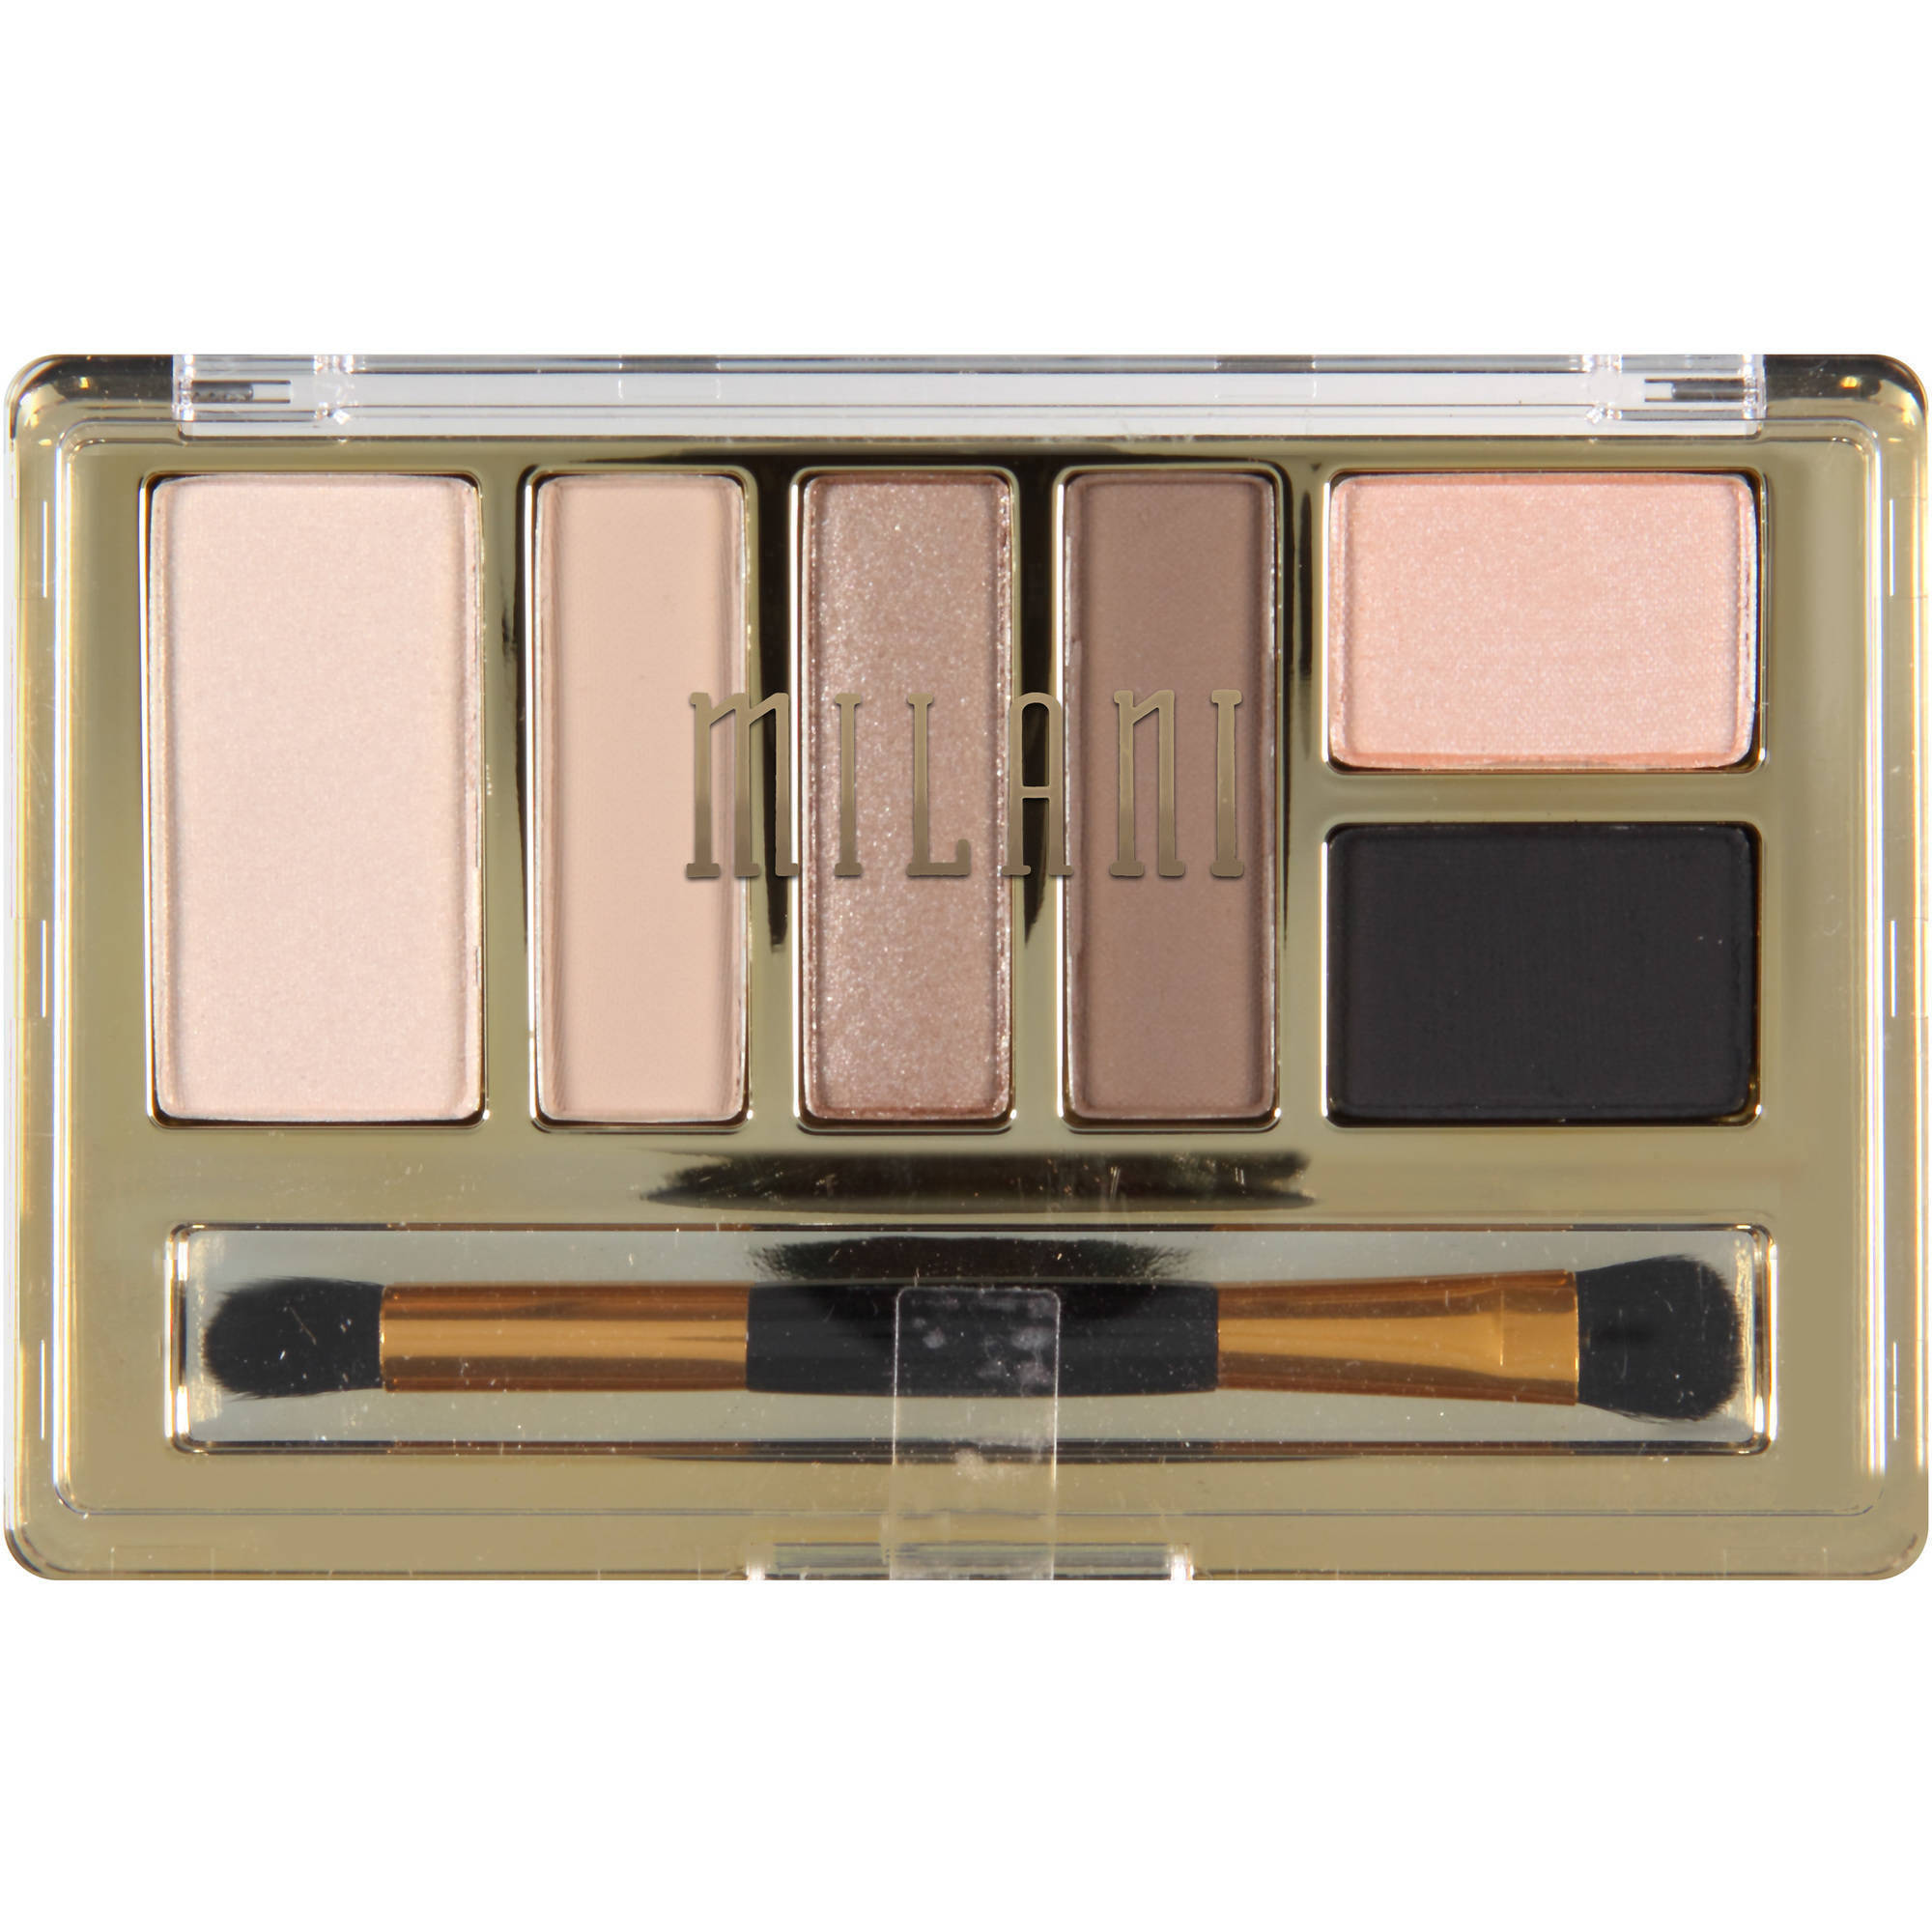 Milani Everyday Eyes Eyeshadow Collection, 01 Must Have Naturals, 0.21 oz